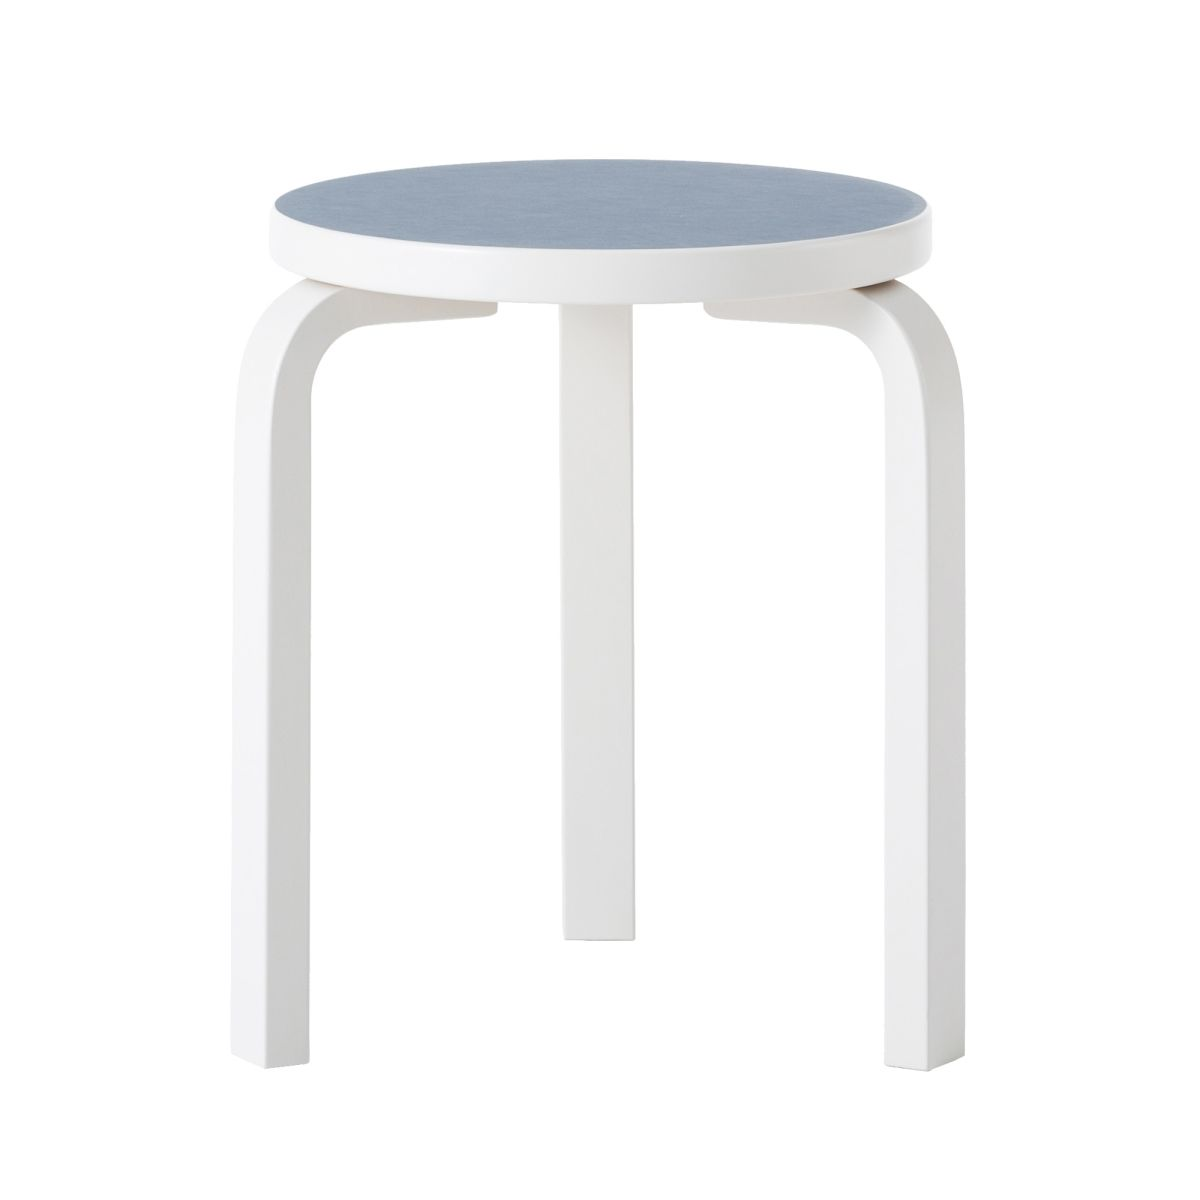 Stool_60_stone-white_lino-blue_sRGB_WEB